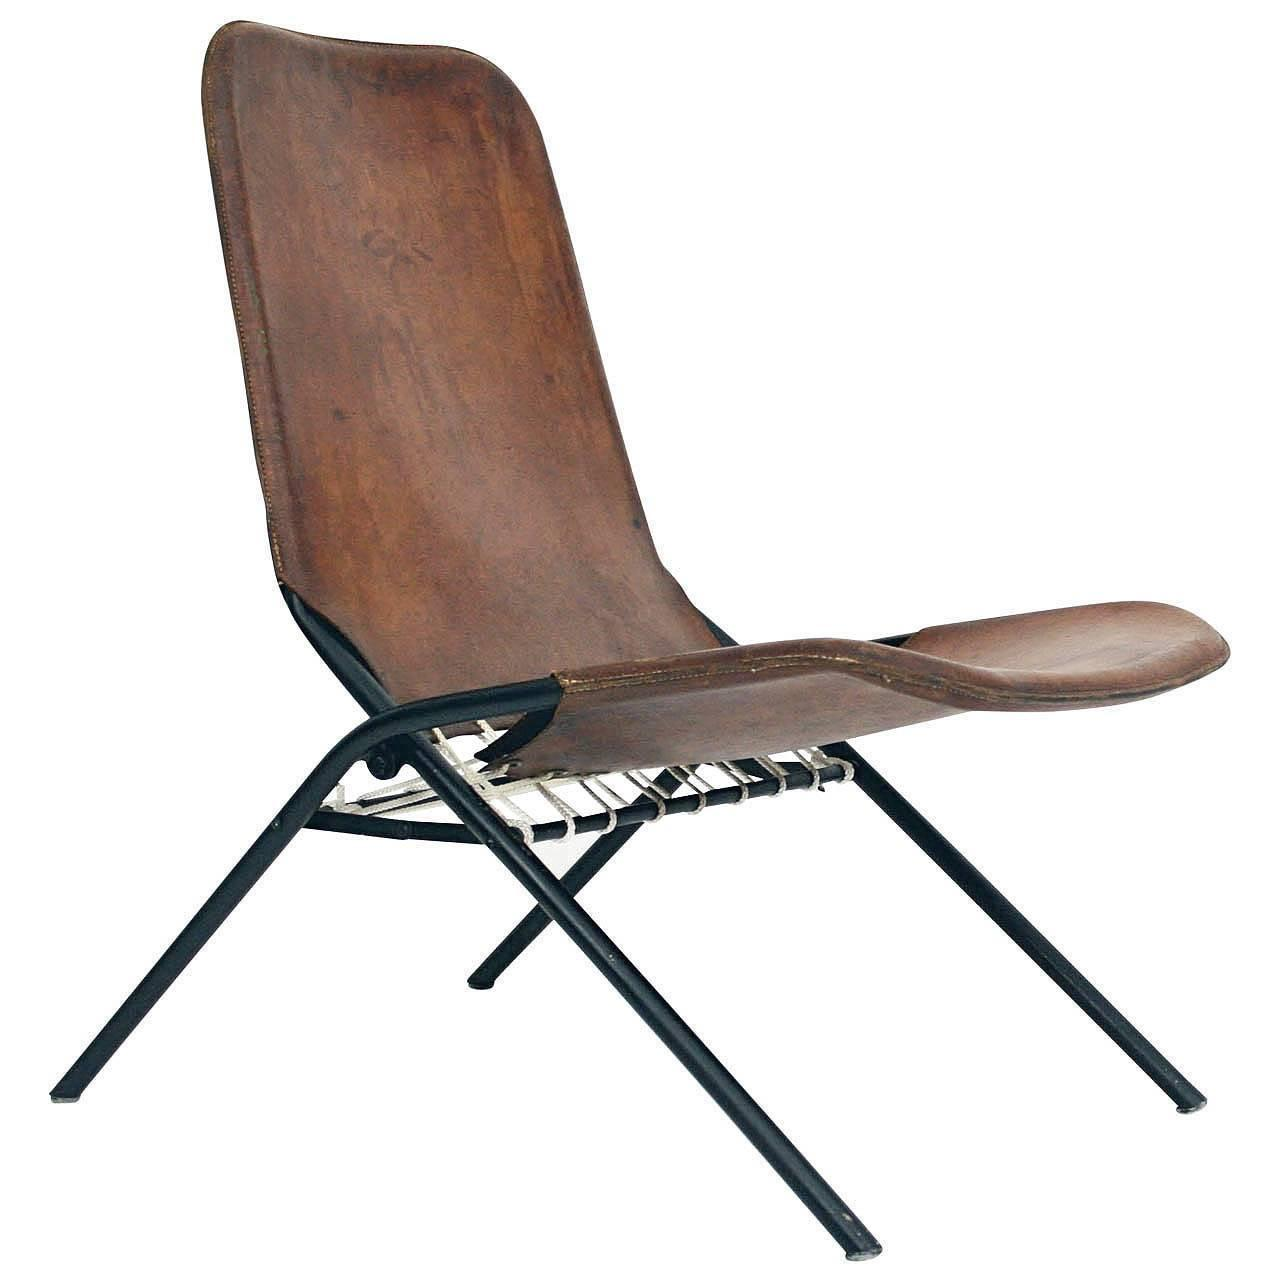 Rare Olof Pira Leather Folding Chair For Sale at 1stdibs